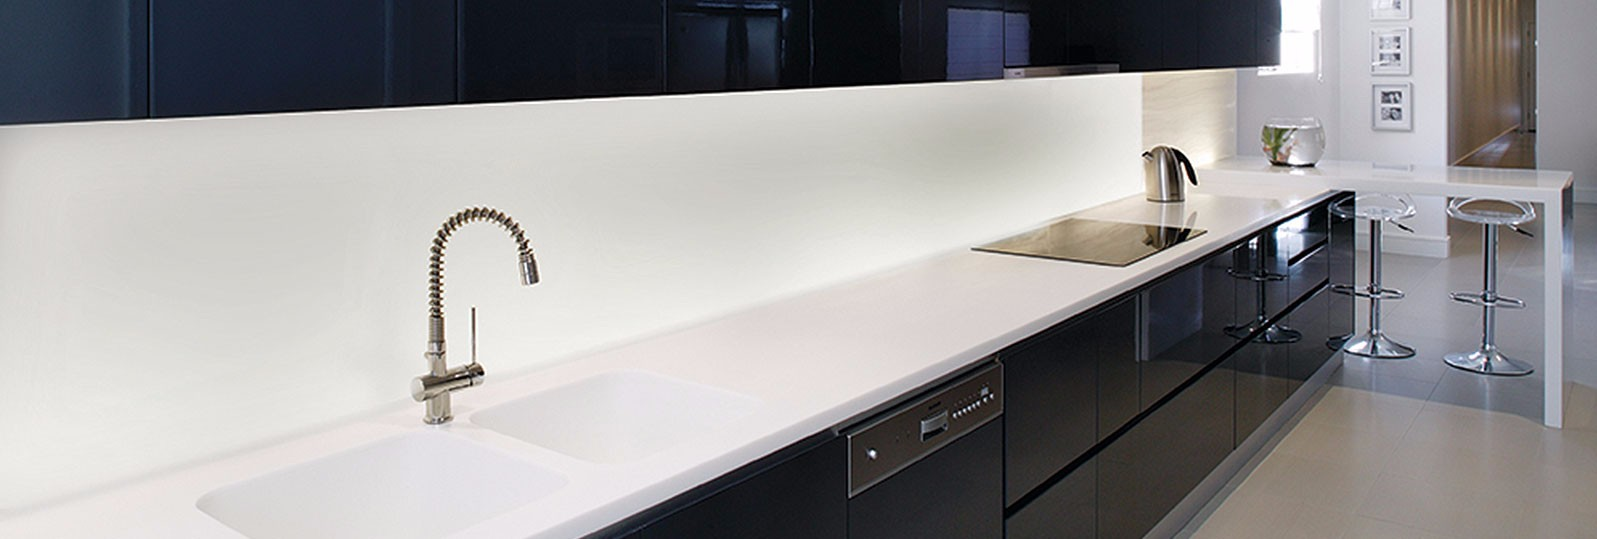 hanex-white-kitchen-1